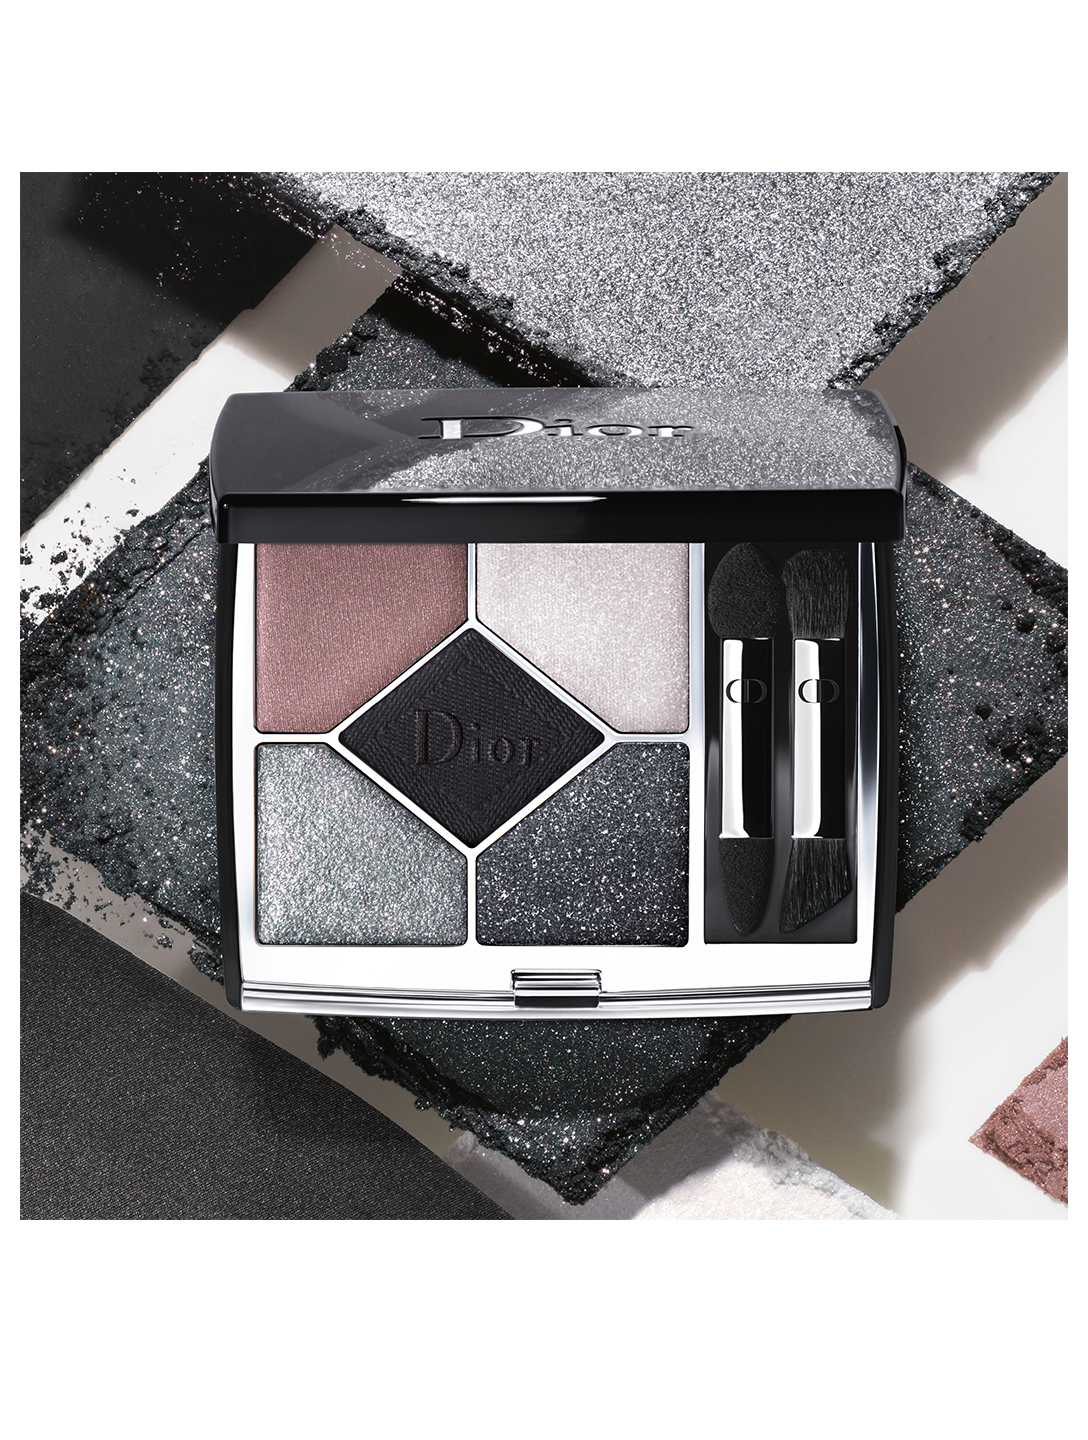 DIOR 5 Couleurs Couture Eyeshadow Palette Beauty Brown